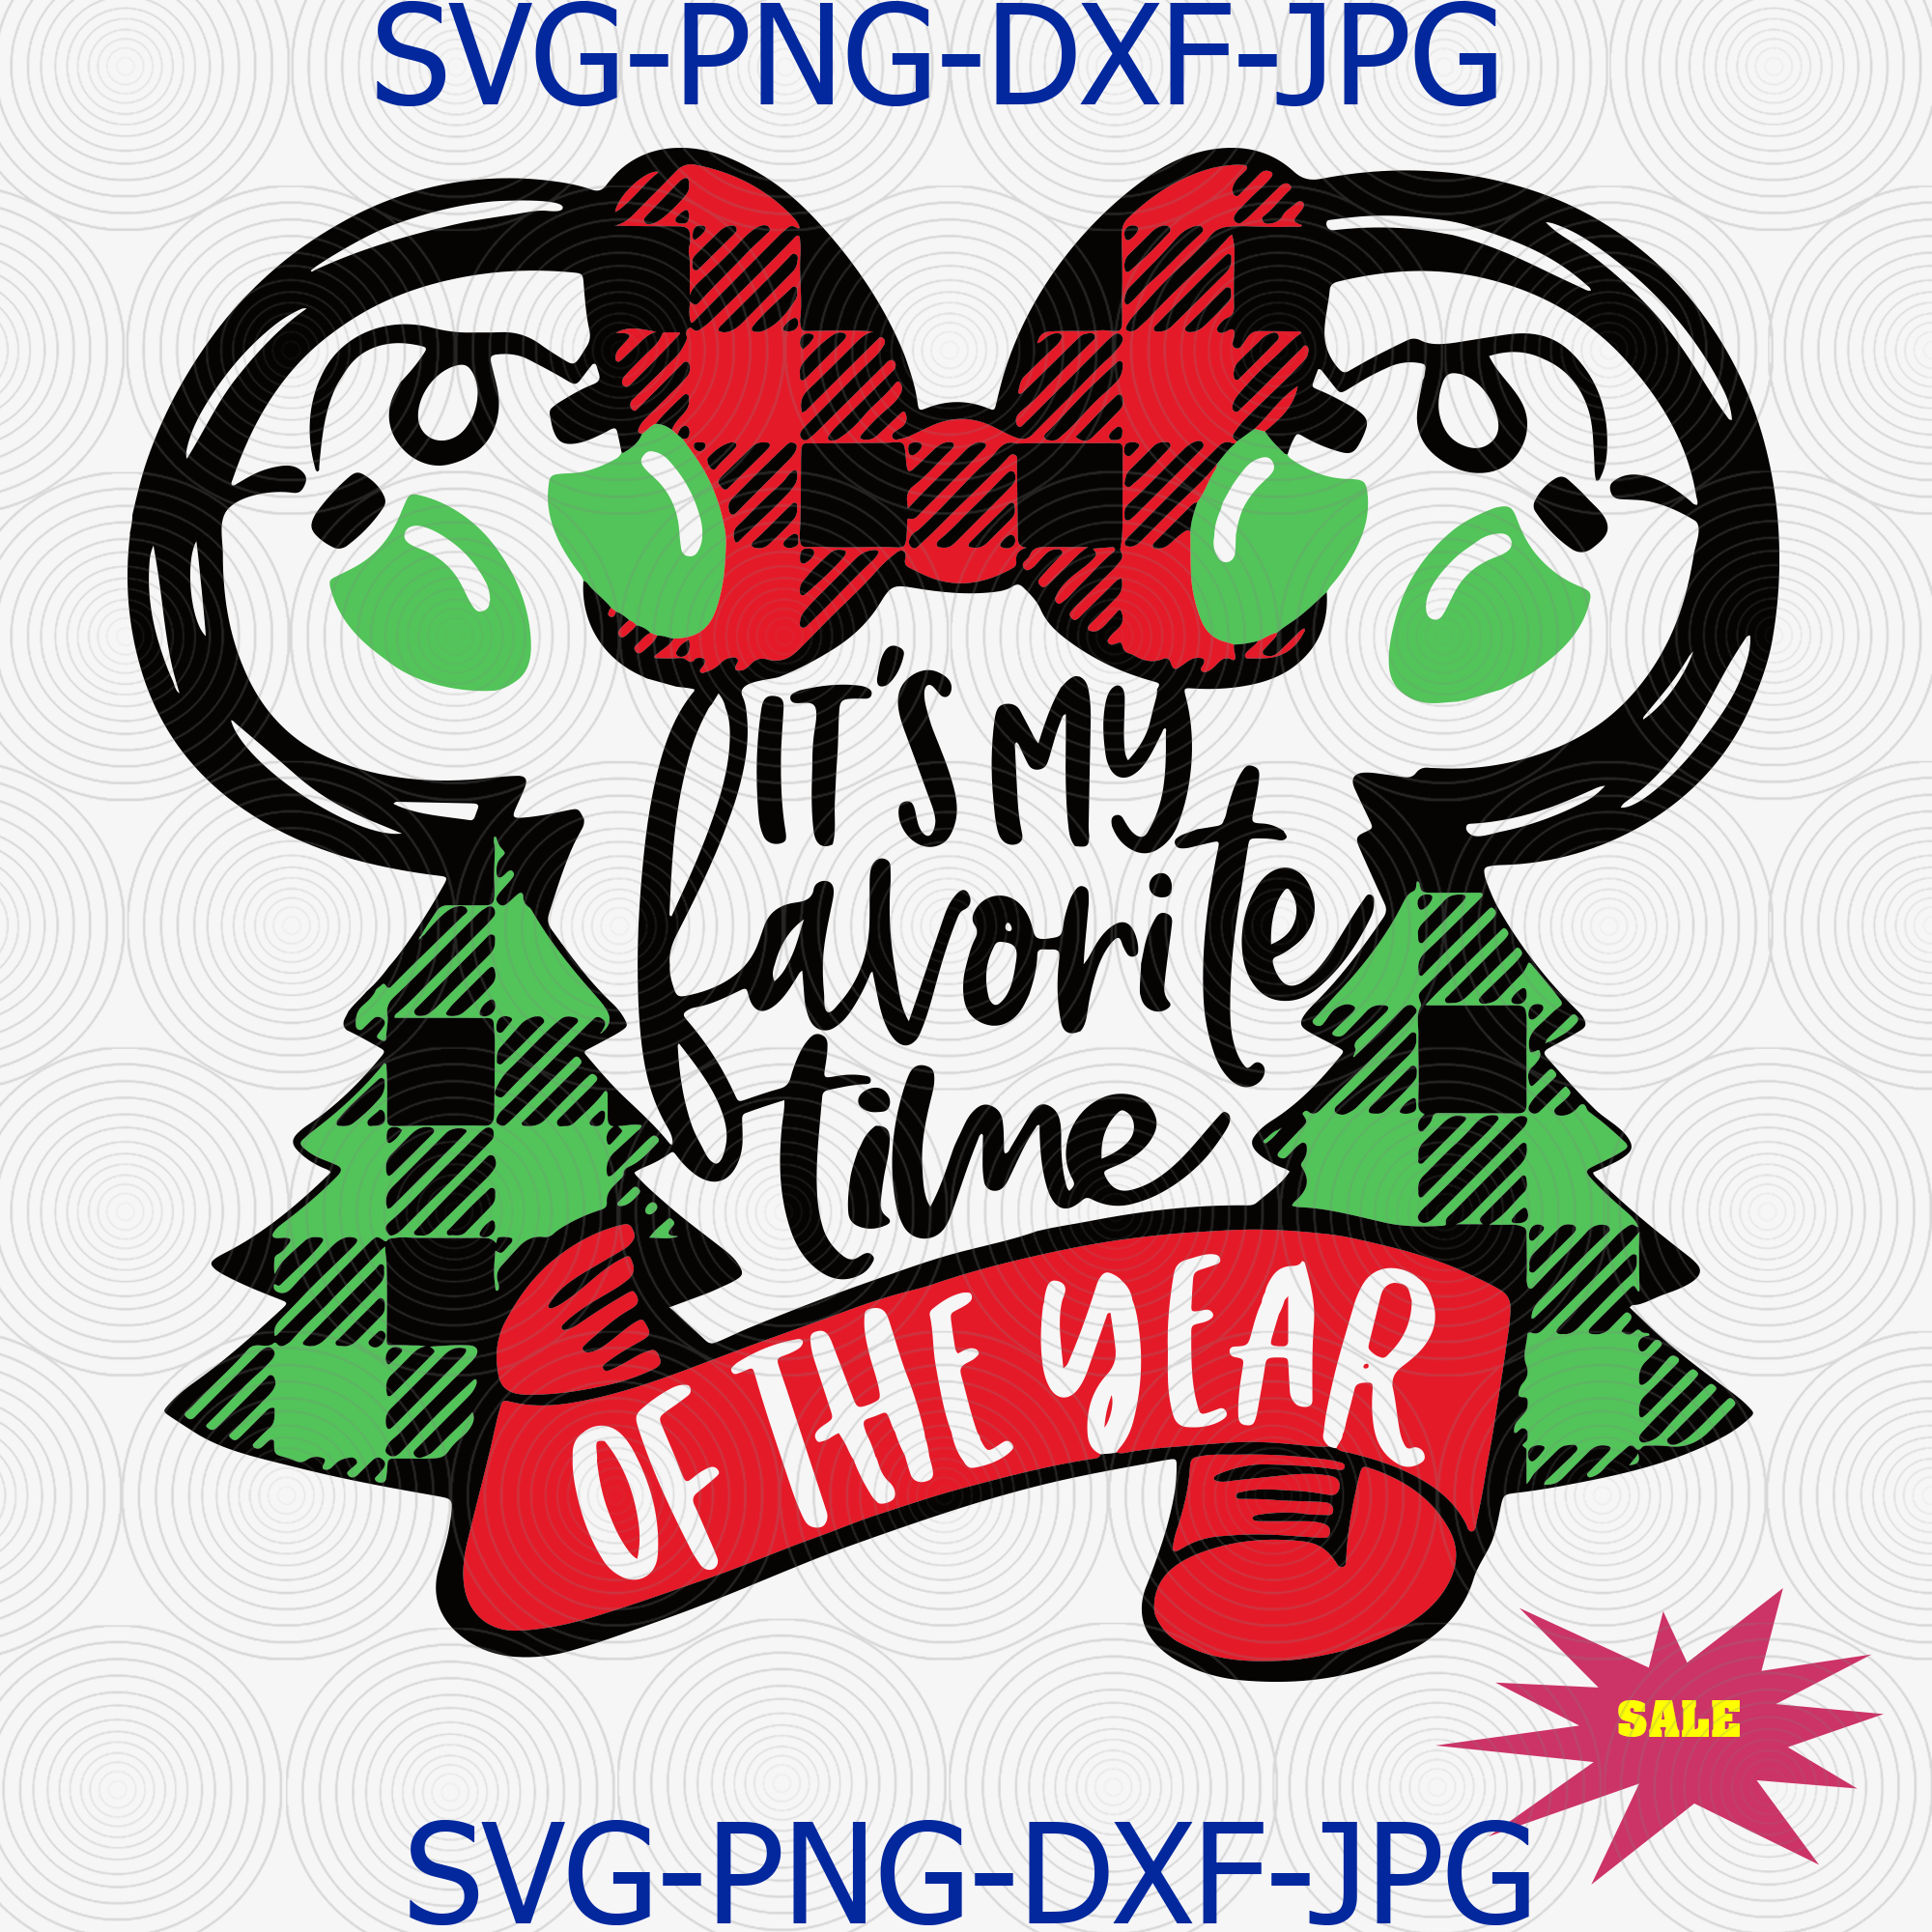 It S My Favorite Time Of Year Svg Merry By Digital4u On Zibbet